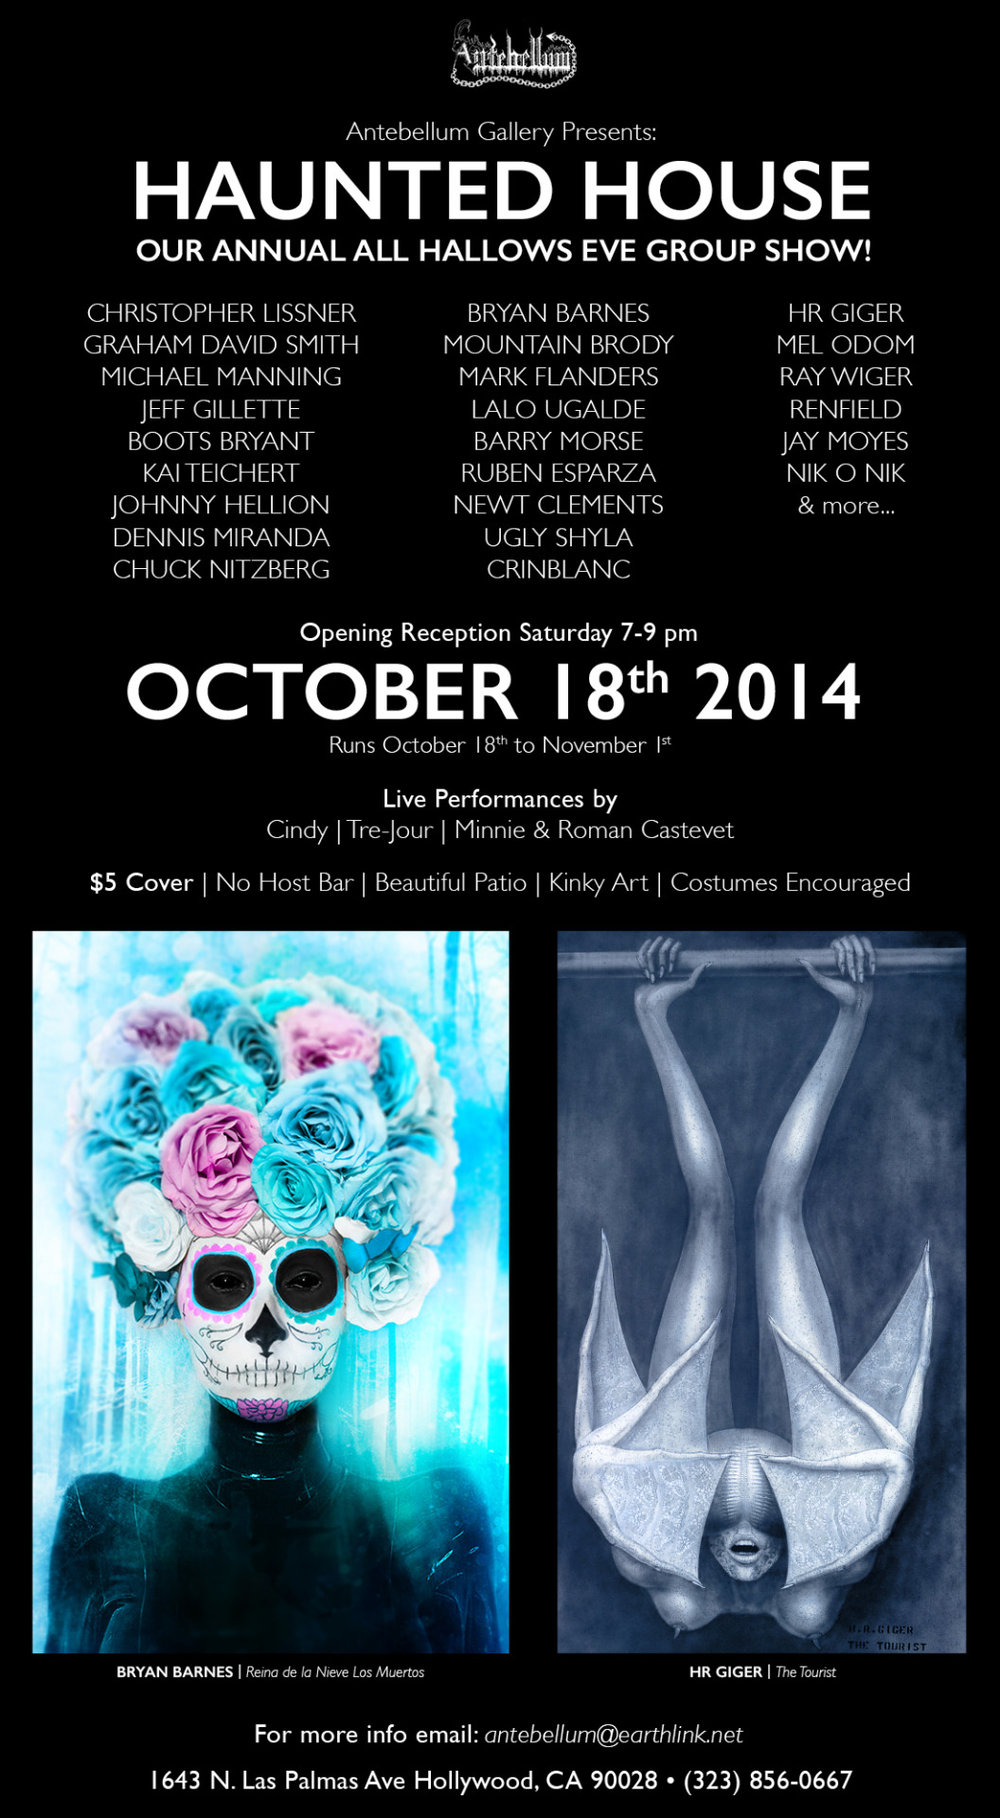 """Hi friends and fellow creatives!      Please join me for the opening reception of the """"Haunted House"""" group art exhibit I'm apart of SATURDAY October 18th 2014 - 7-9 pm  at the Antebellum Gallery in lovely Hollywood, California!      I'm honored to showcase my new 24""""x36"""" art piece """" Reina de la Nieve Los Muertos""""   [pictured on promo] displayed in a custom white frame [artwork for sale] alongside my idol Swiss surrealist master-artist  Mr. HR GIGER [of ALIEN, Species, PROMETHEUS film fame]  and other amazing artists in the exhibit as well!      Hope to see you at Antebellum Gallery in Hollywood opening night Saturday October 18th 7-9pm! It will be an AMAZING exhibit opening! :)        http://www.artslant.com/la/events/show/359963-haunted-house—all-hallows-eve-group-exhibition"""